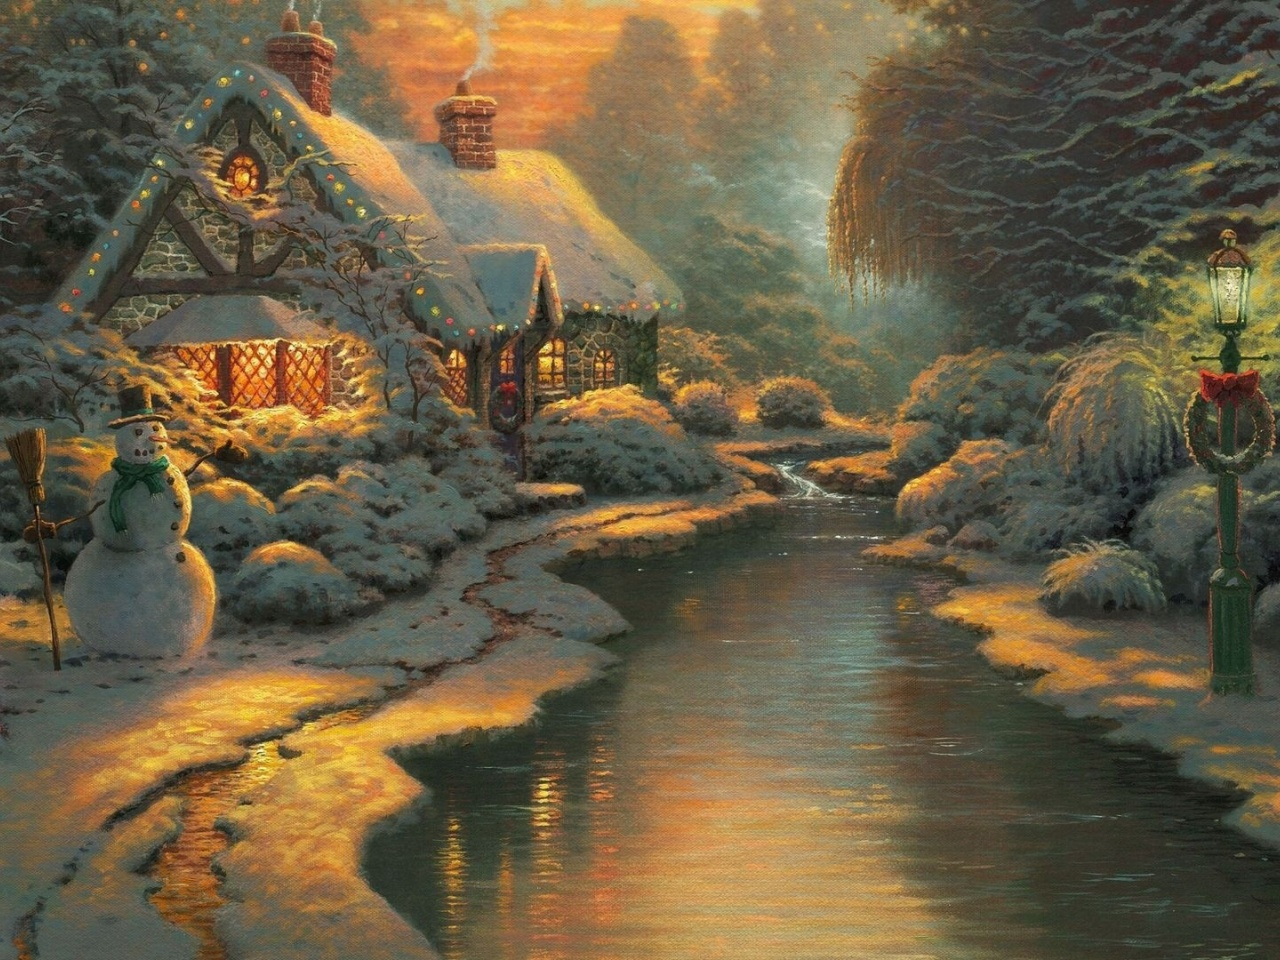 1280x960 Christmas Cottage Desktop Pc And Mac Wallpaper